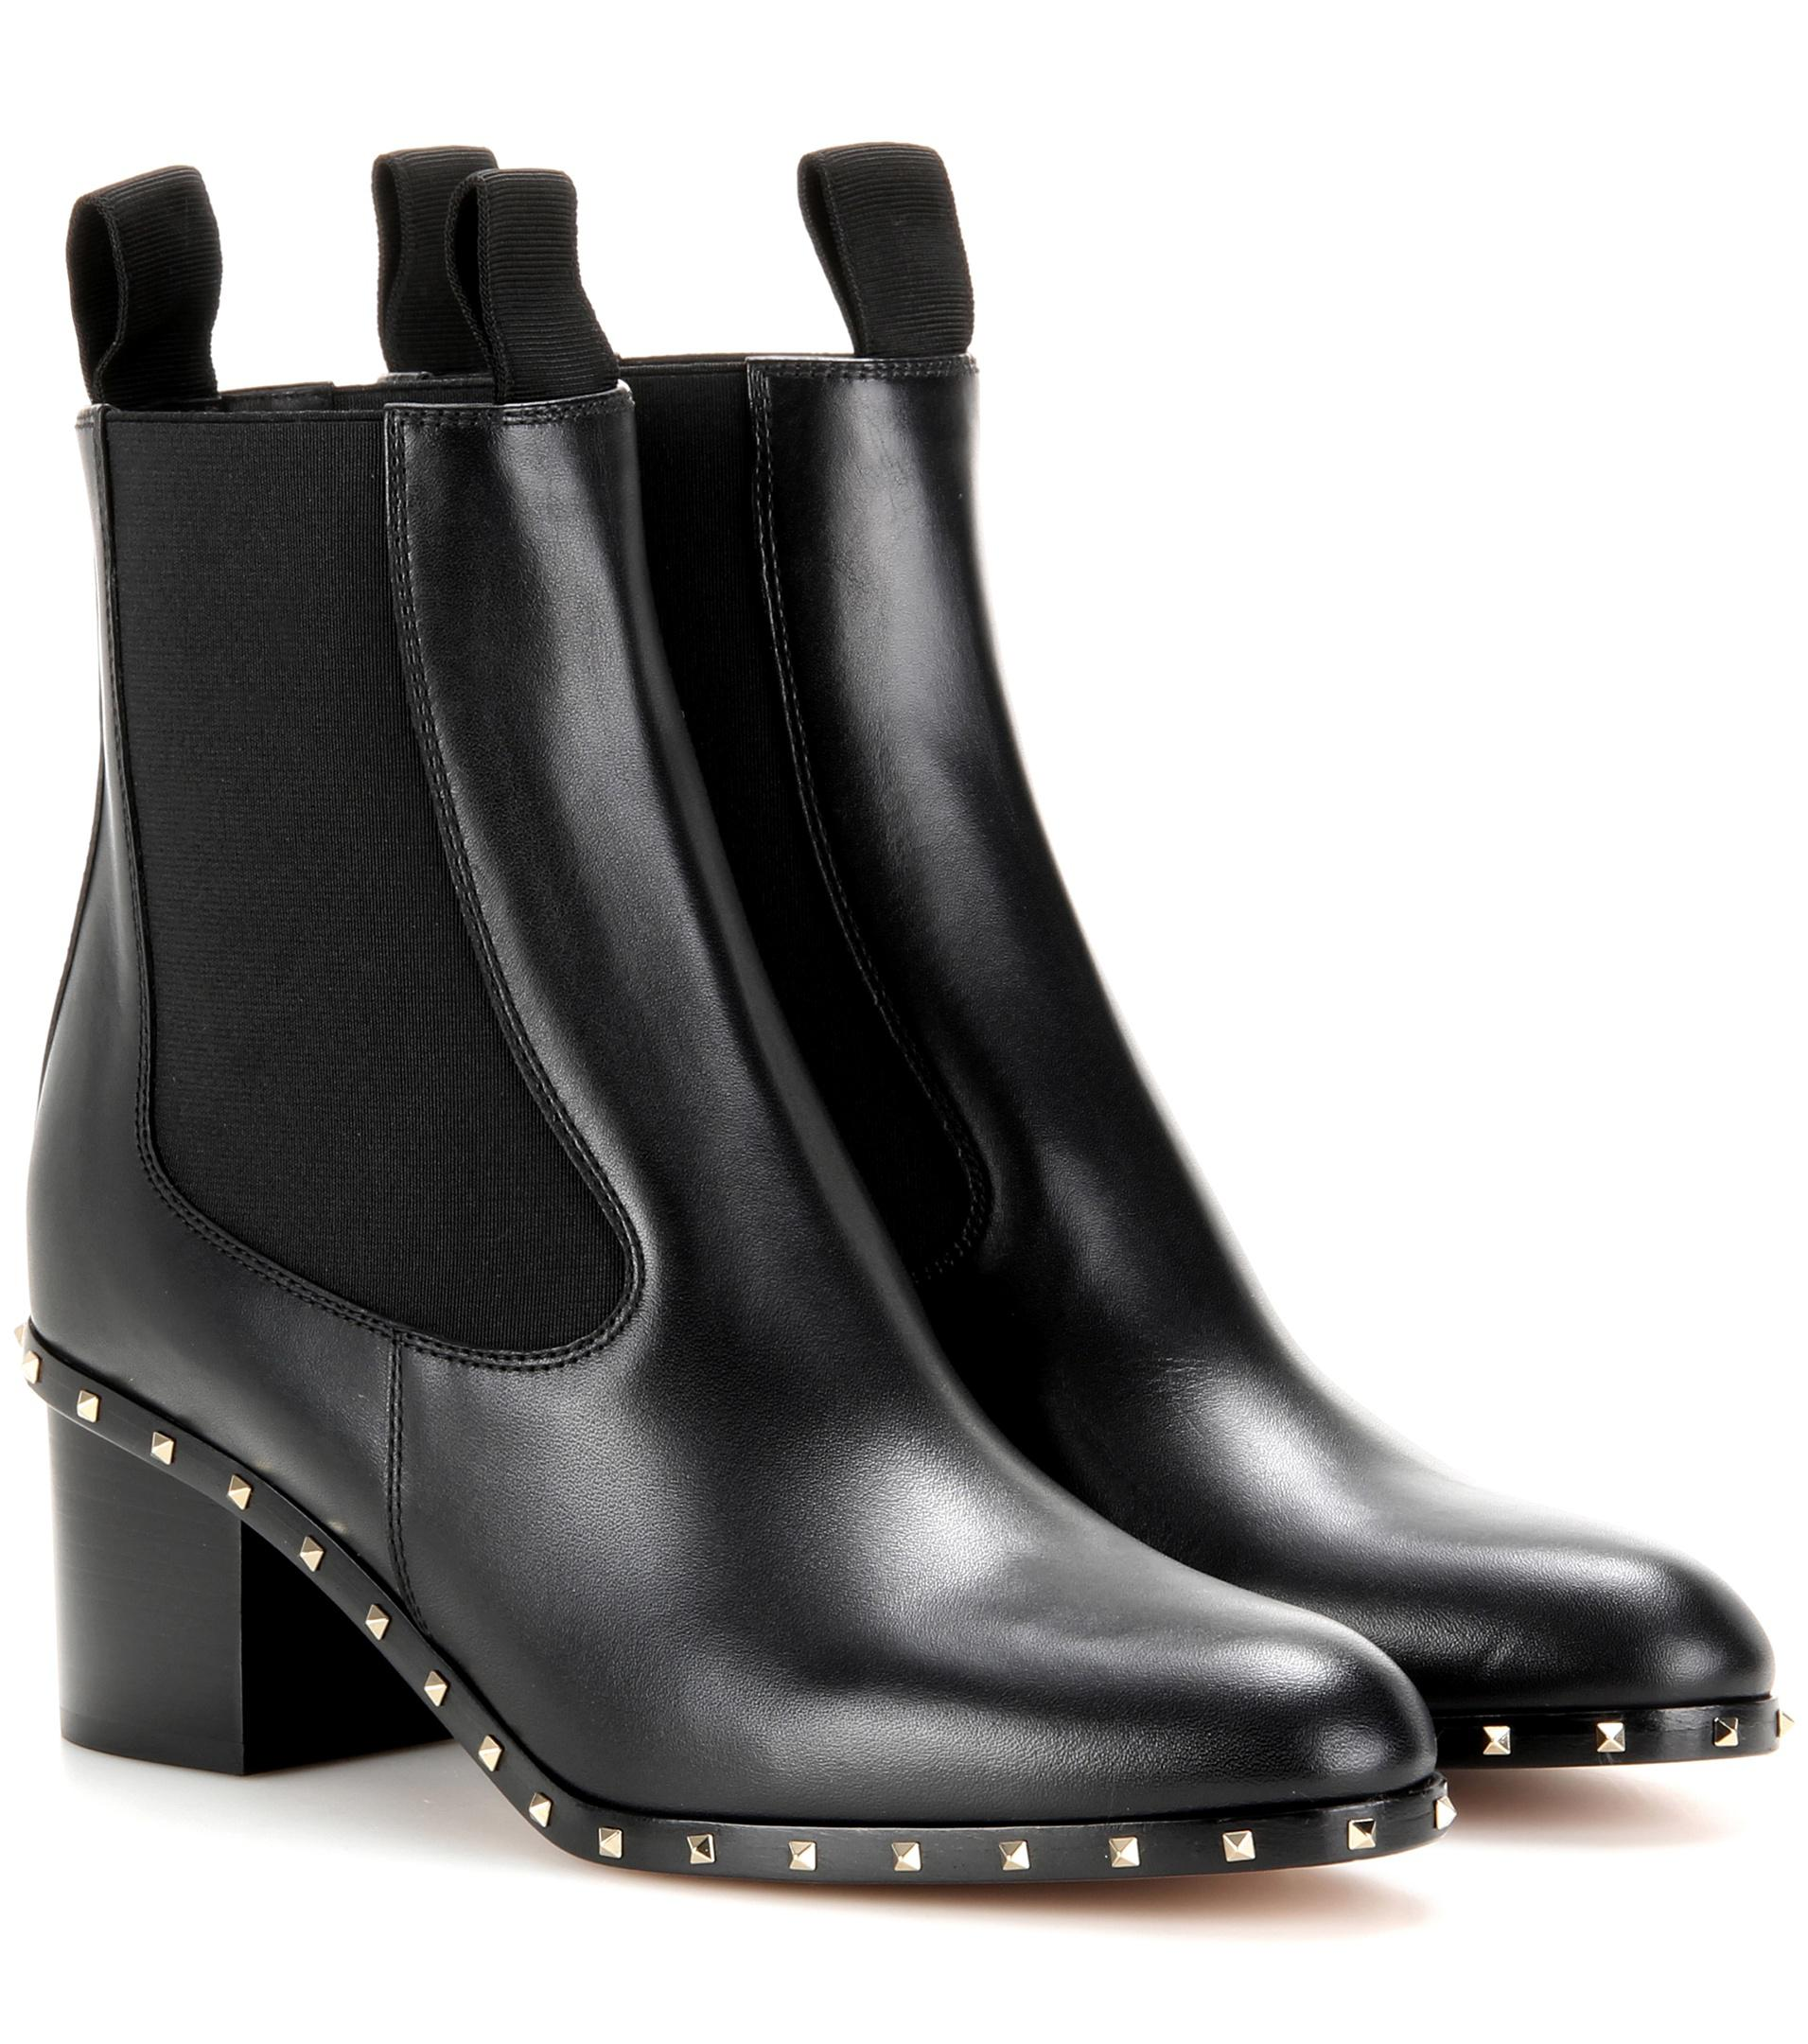 Black Valentino Garavani Soul Rockstud Chelsea Boots Valentino Buy Cheap Store Shop For Cheap Price 100% Authentic For Sale Limited Edition Pay With Paypal For Sale G3qAFTjgZq